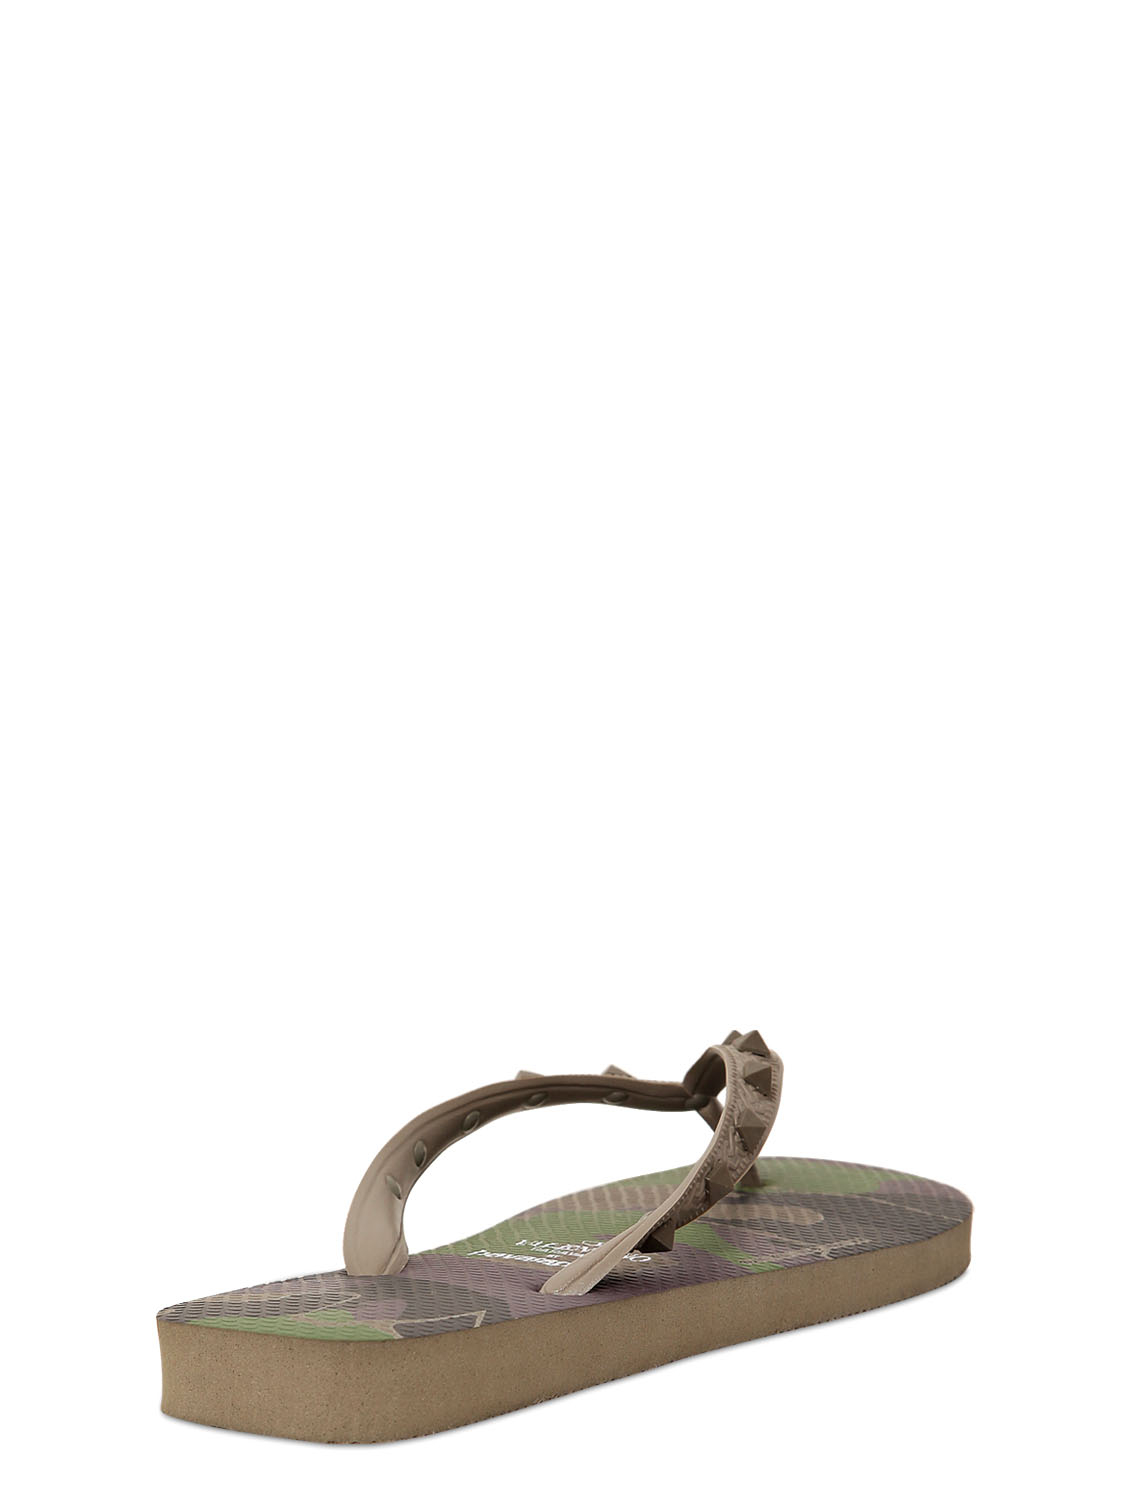 Valentino Rubber Camouflage Studded Flip Flops In Green -7600